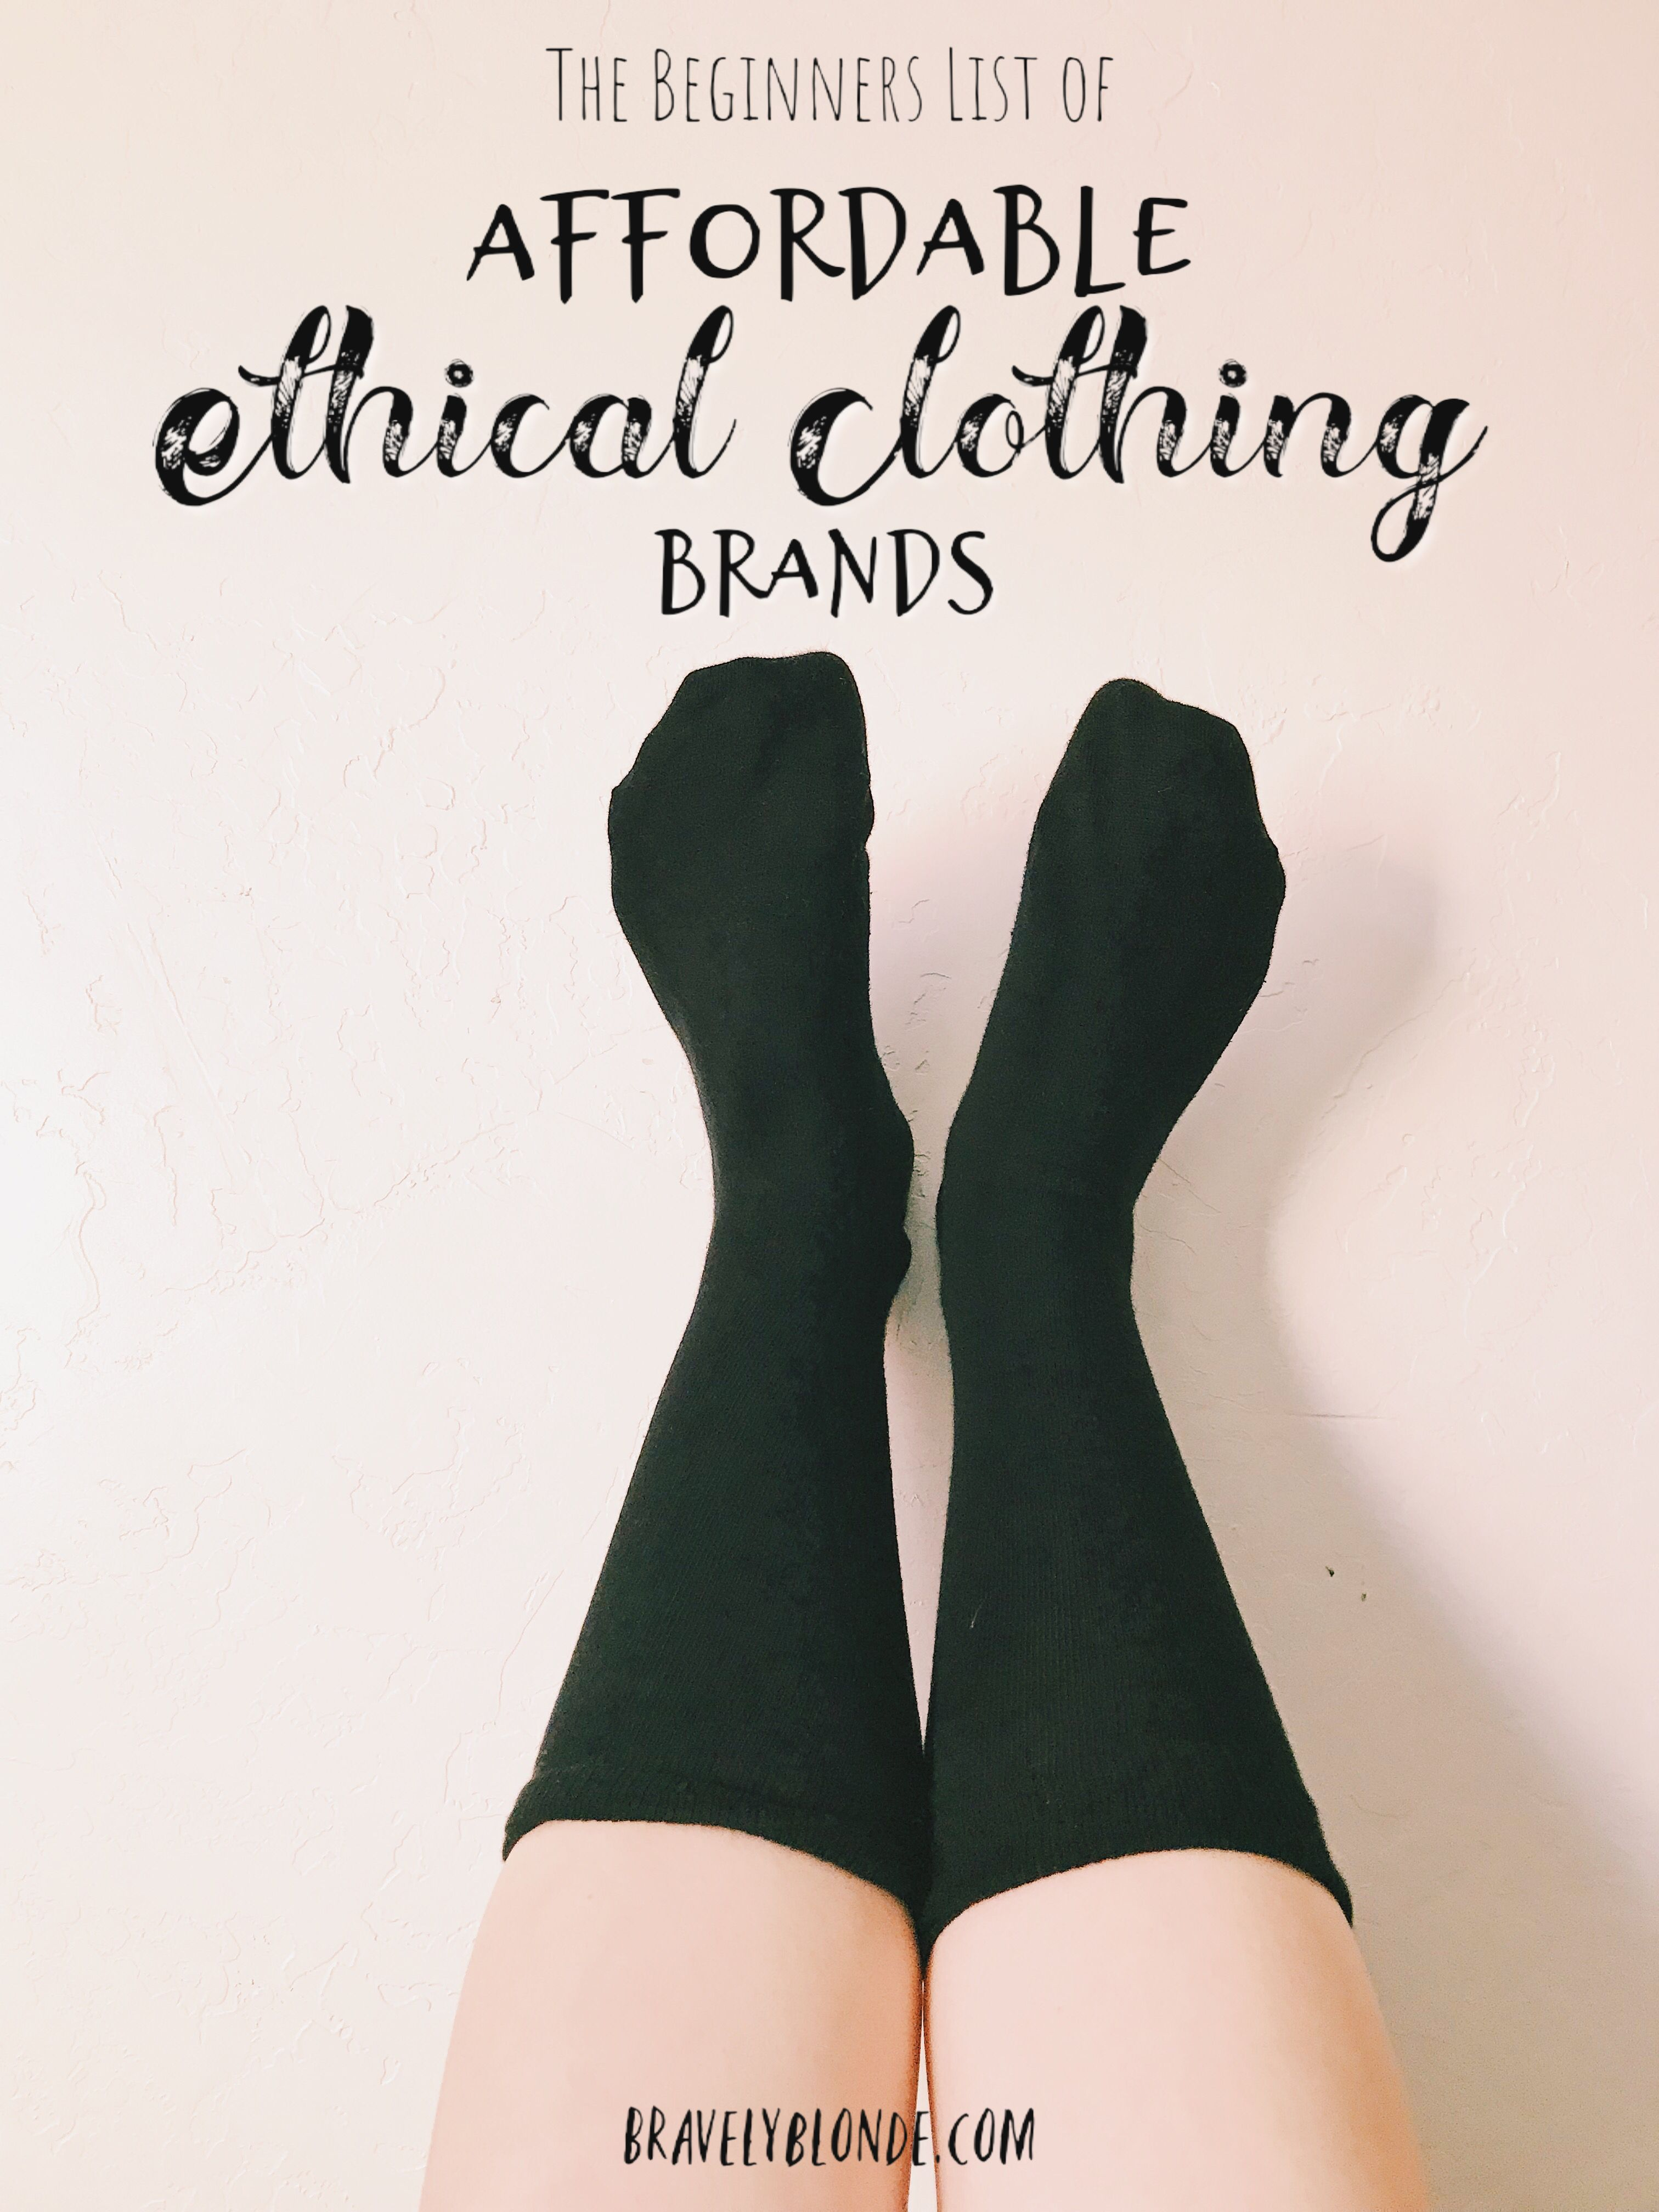 The Beginners List of Affordable Ethical Clothing Brands